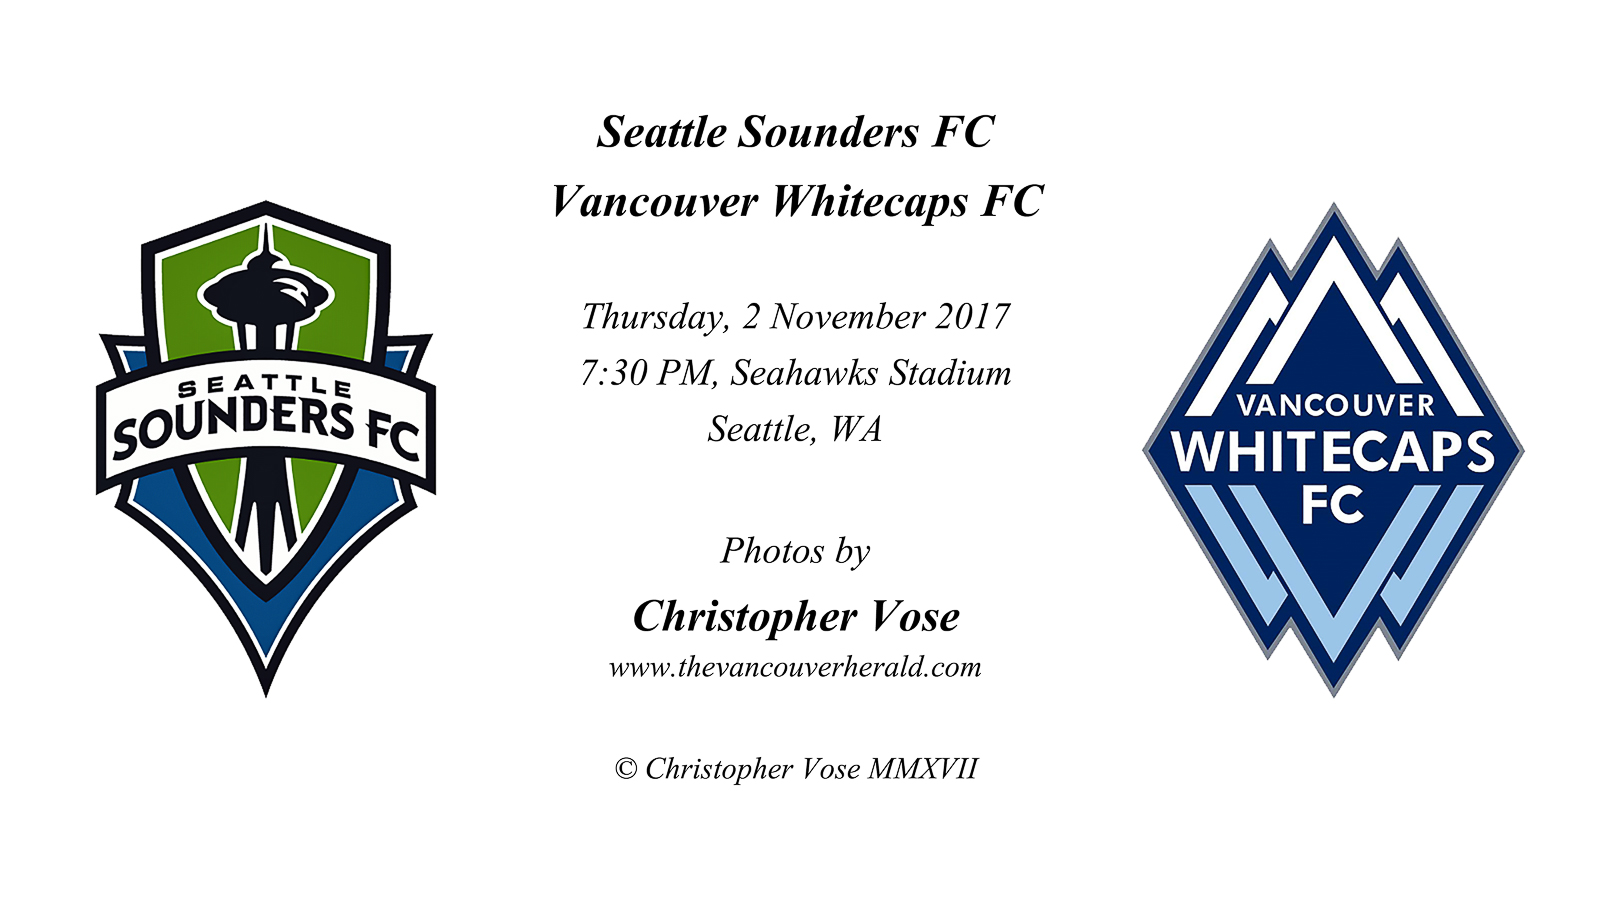 2017-11-02 Seattle Sounders FC v Vancouver Whitecaps FC 1.jpg